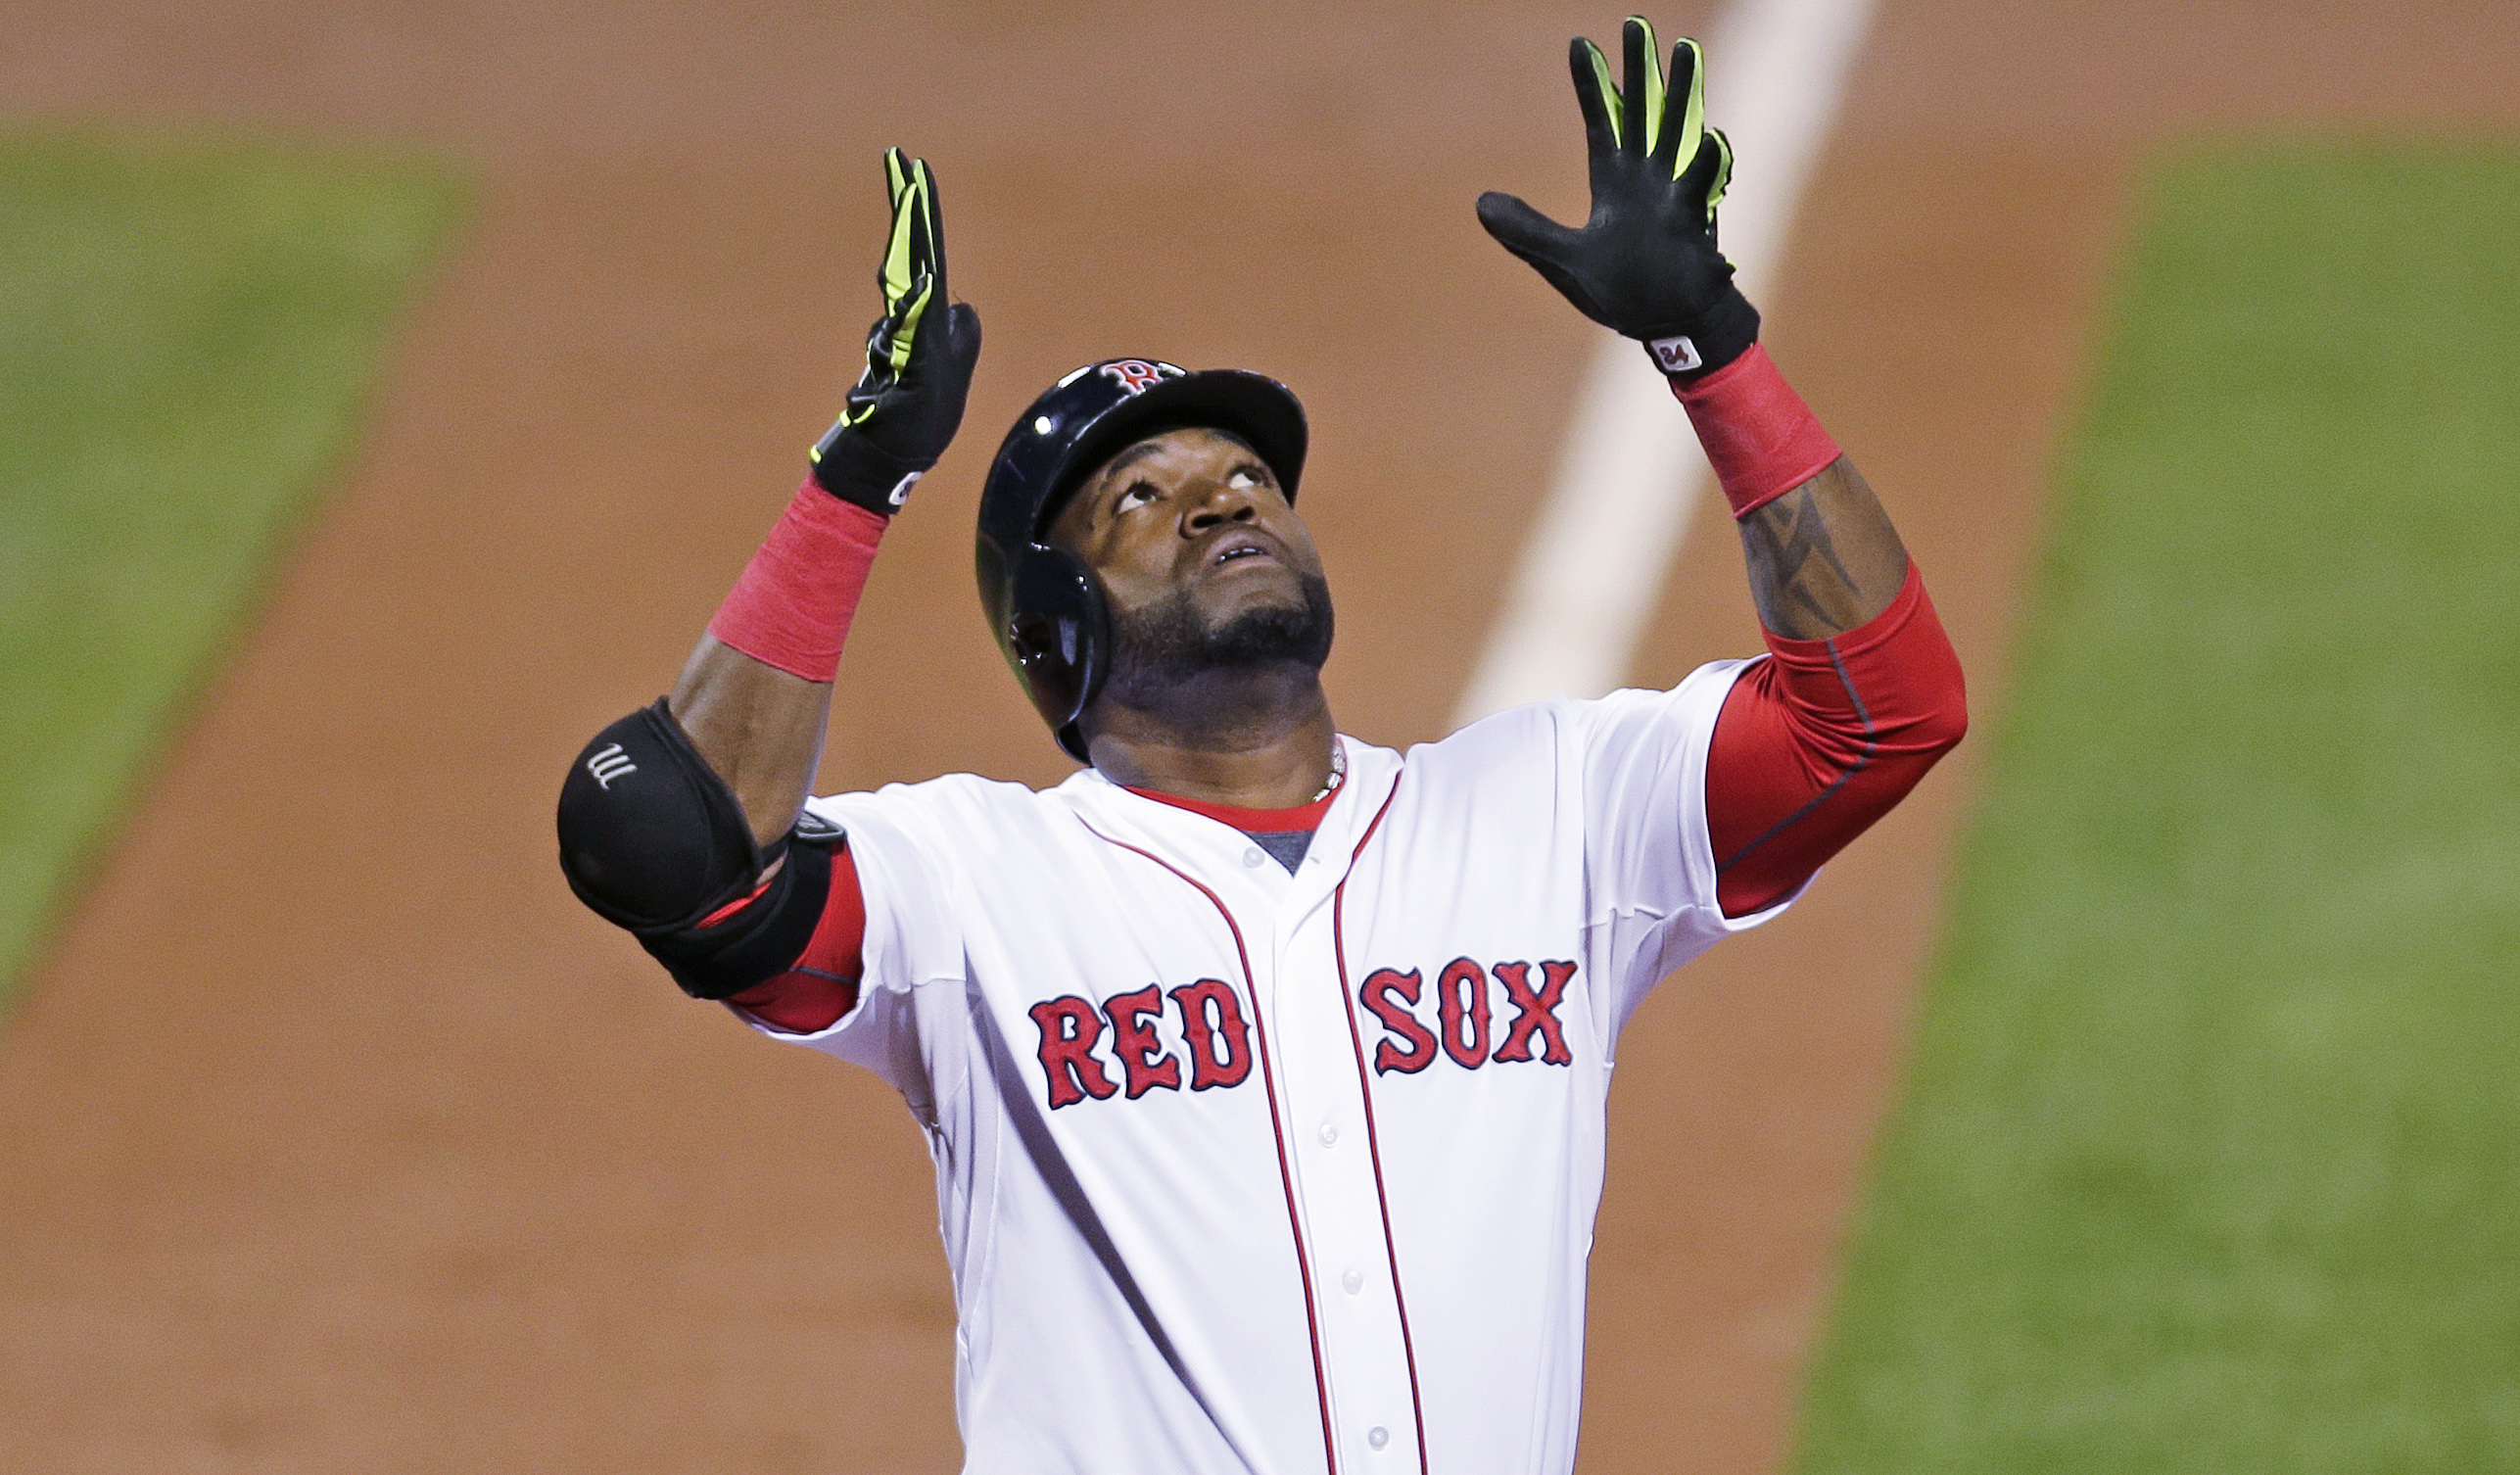 Boston Red Sox designated hitter David Ortiz raises his arms and looks upward as he crosses home plate after a two-run home run during the first inning of a baseball game against the Tampa Bay Rays at Fenway Park in Boston, Thursday, Sept. 24, 2015. (AP P